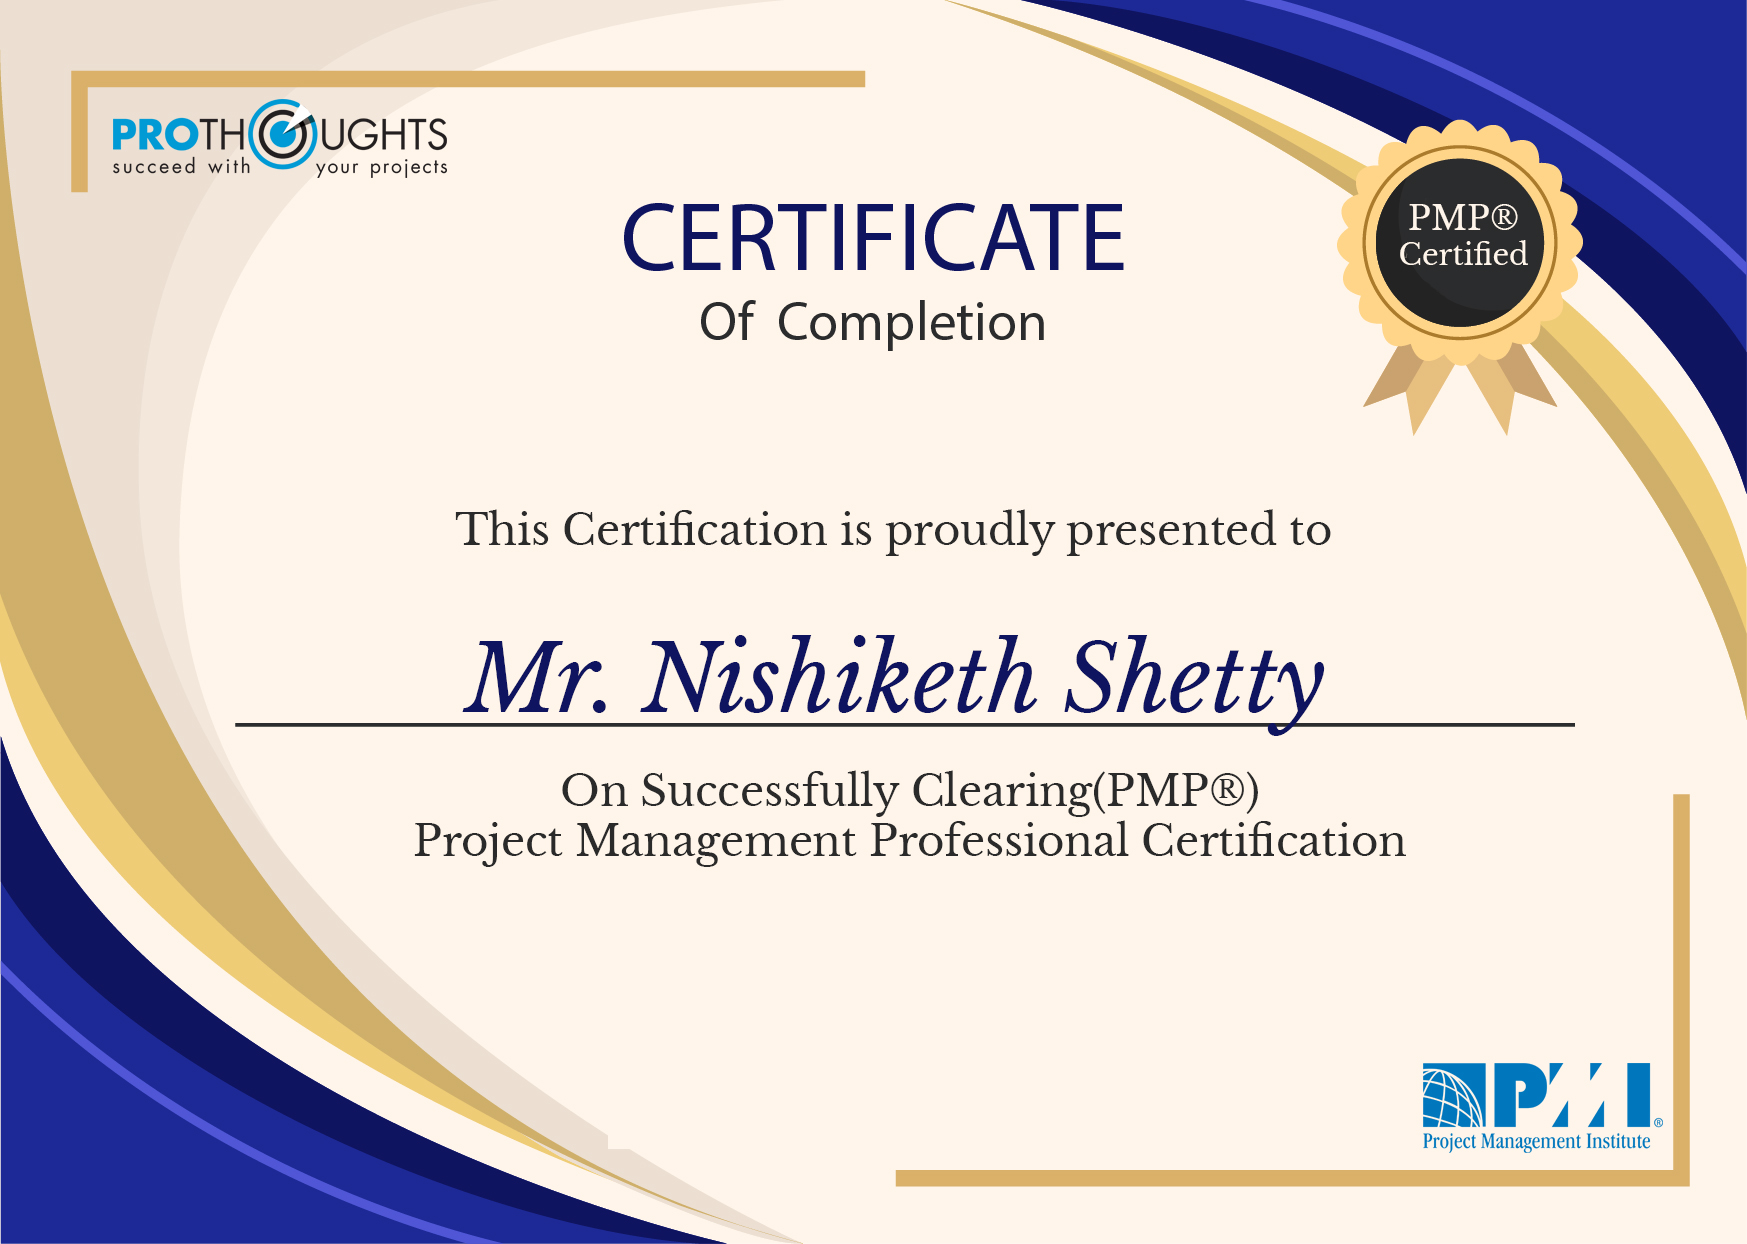 Mr. Nishikesh Shetty